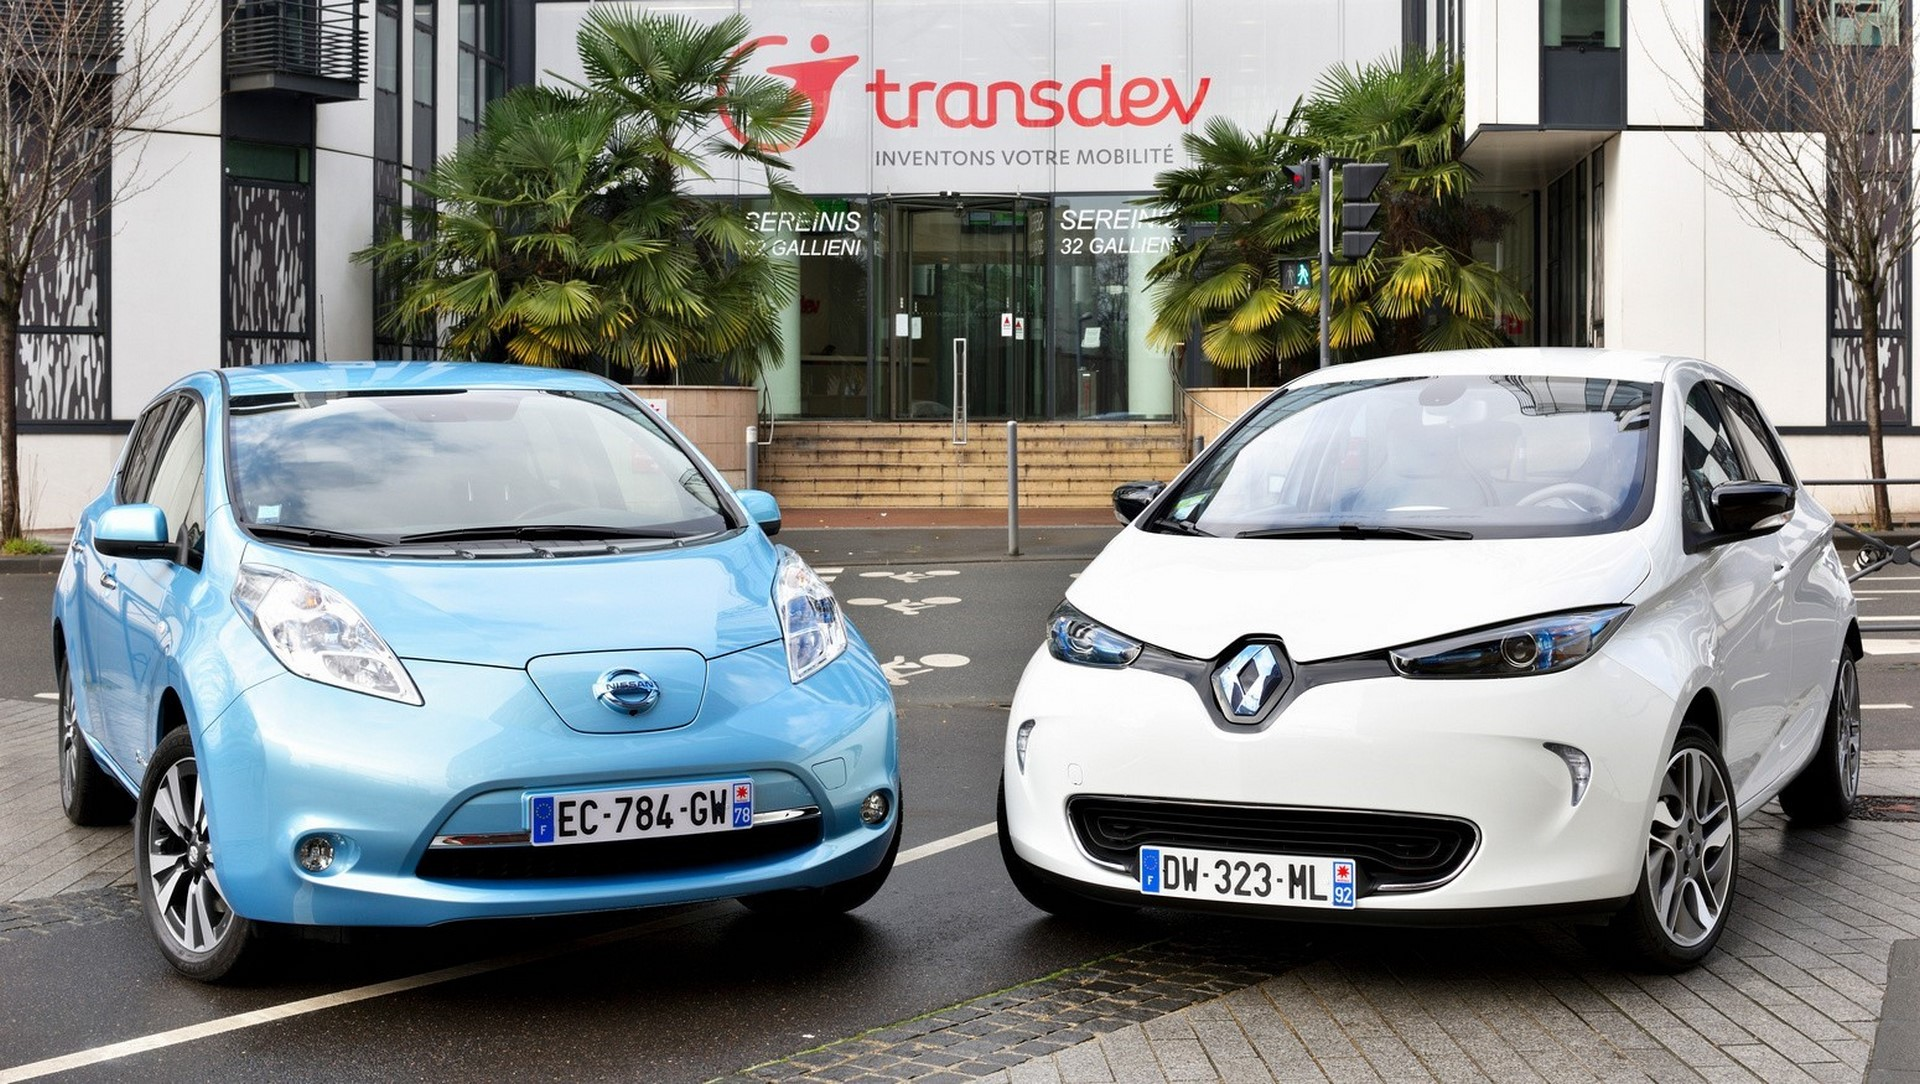 Renault-Nissan Alliance and Transdev to jointly develop driverless vehicle fleet system for future public and on-demand transportation LEAD